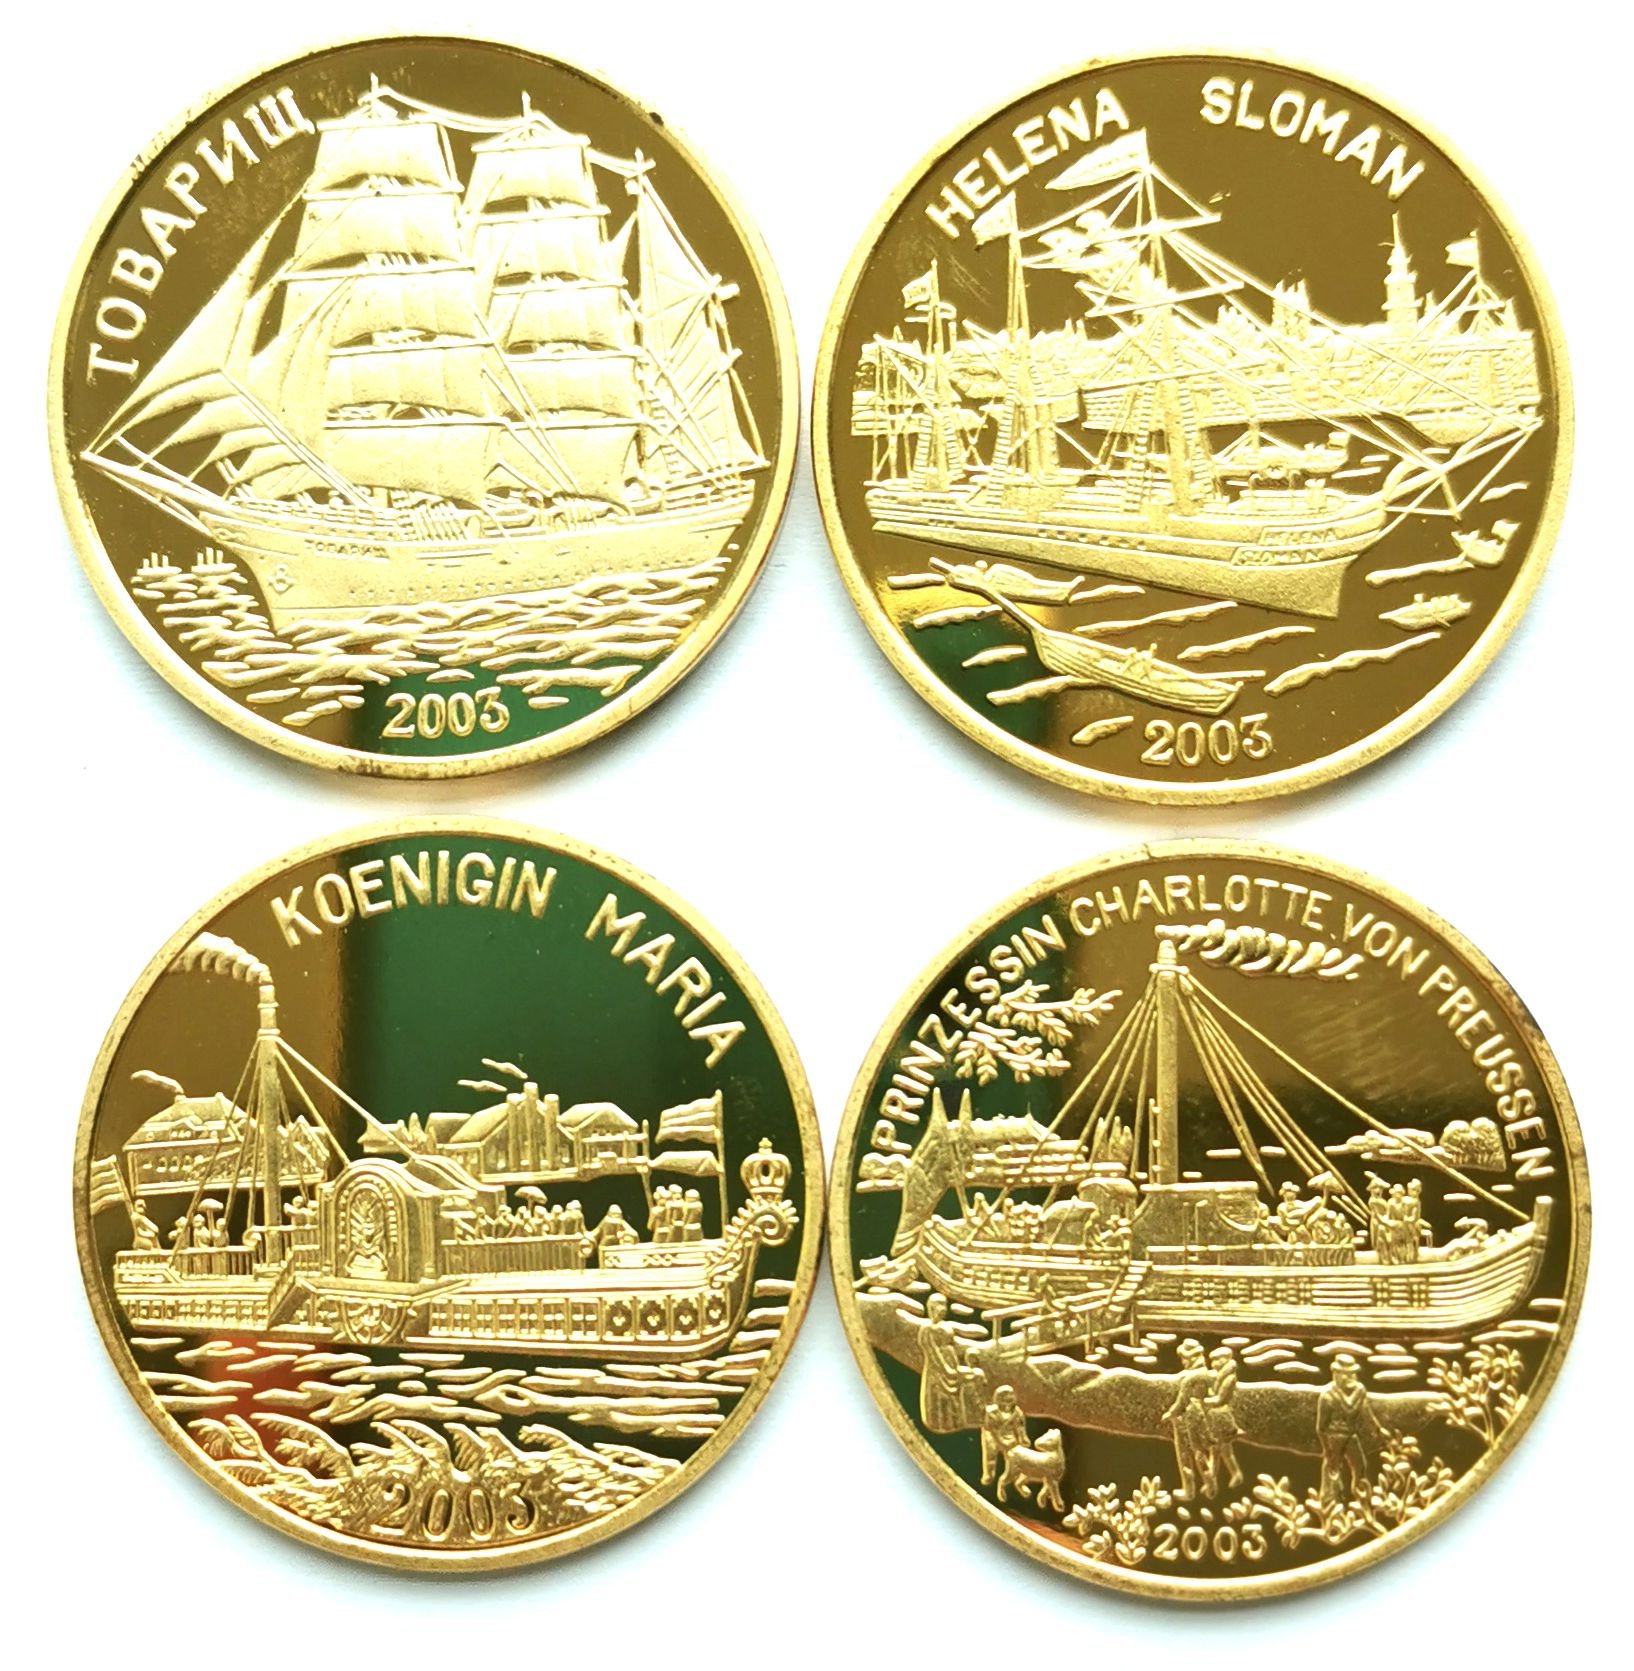 L3276, Korea Ancient Warships 4 Pcs Commemorative Coins, 2003